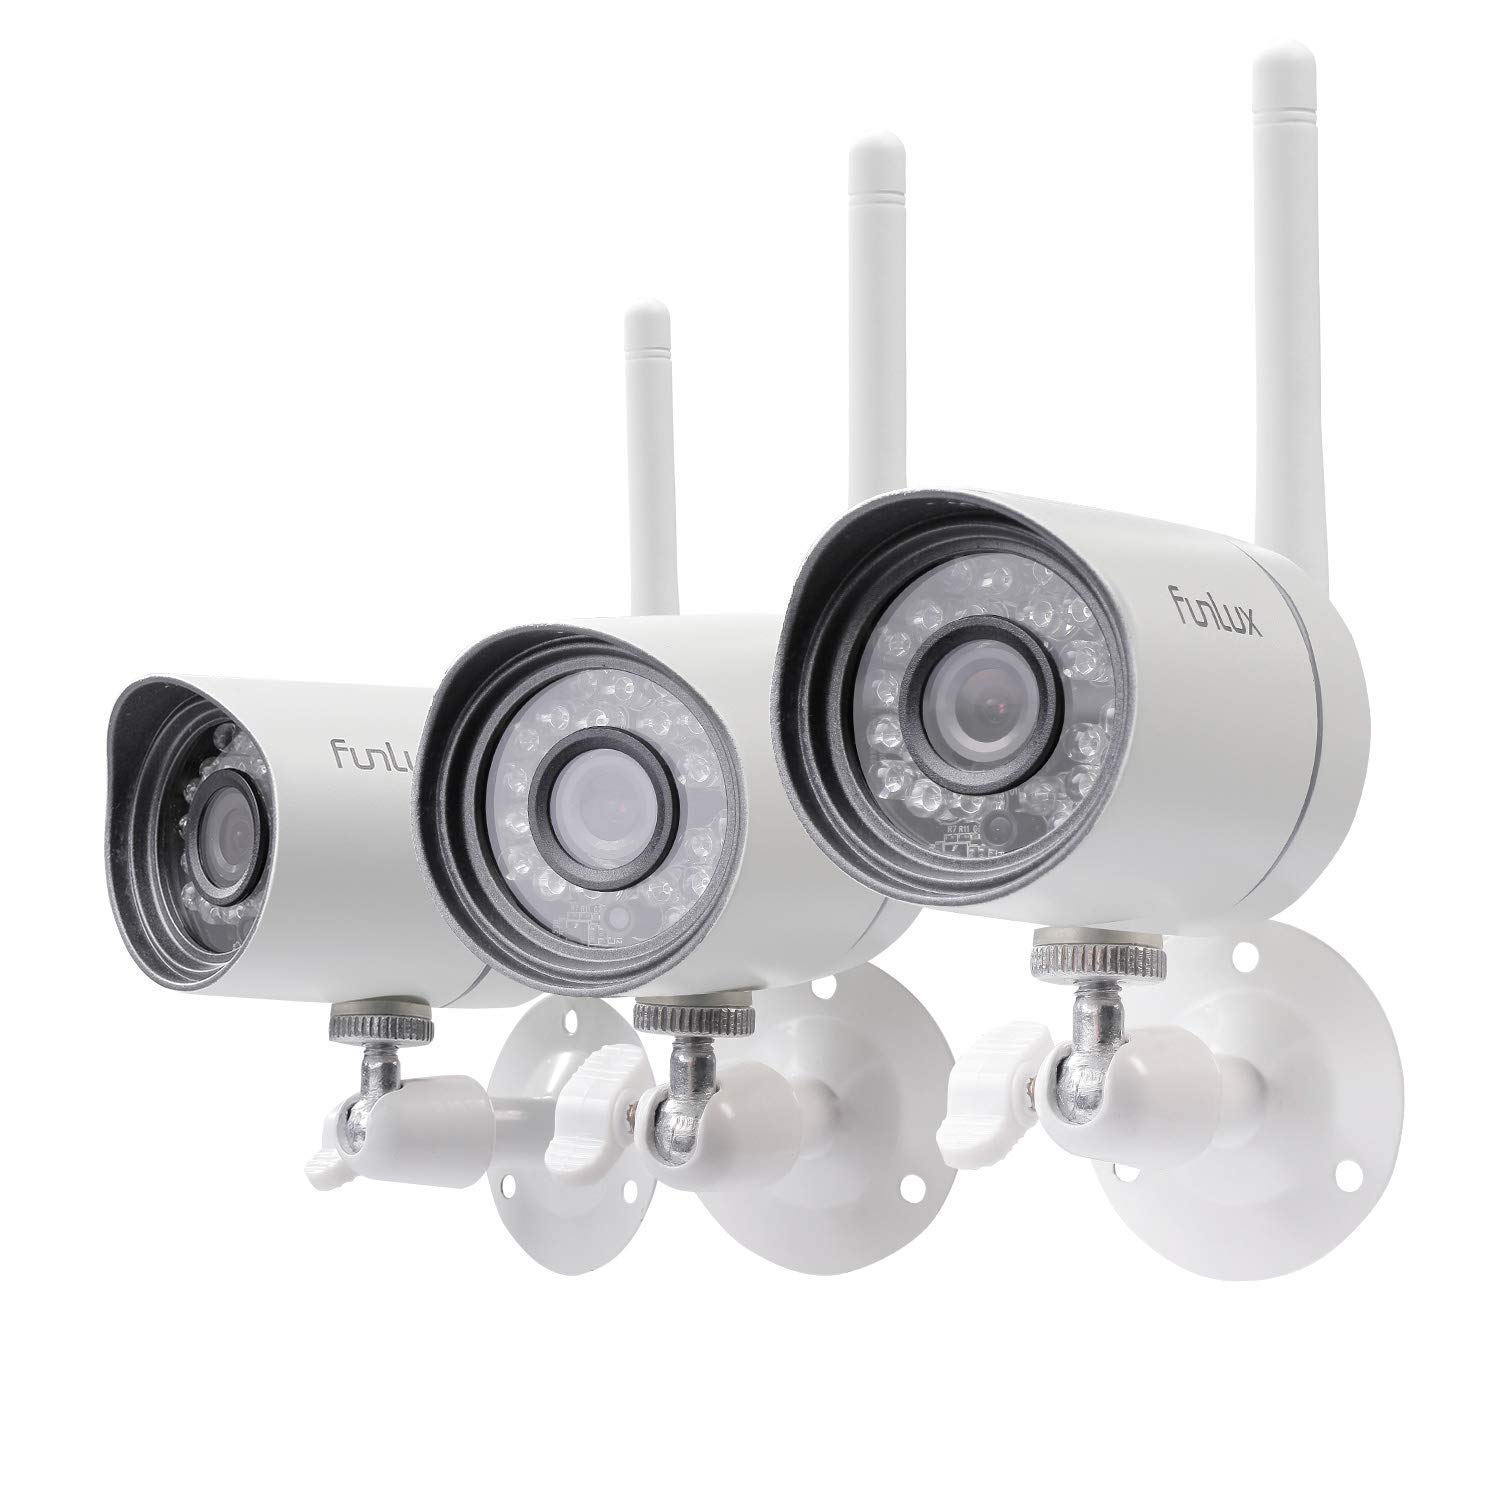 Funlux Wireless Security Camera System (3 Pack), Smart Home HD Indoor Outdoor WiFi IP Cameras with Night Vision, Cloud Service Available (Renewed)